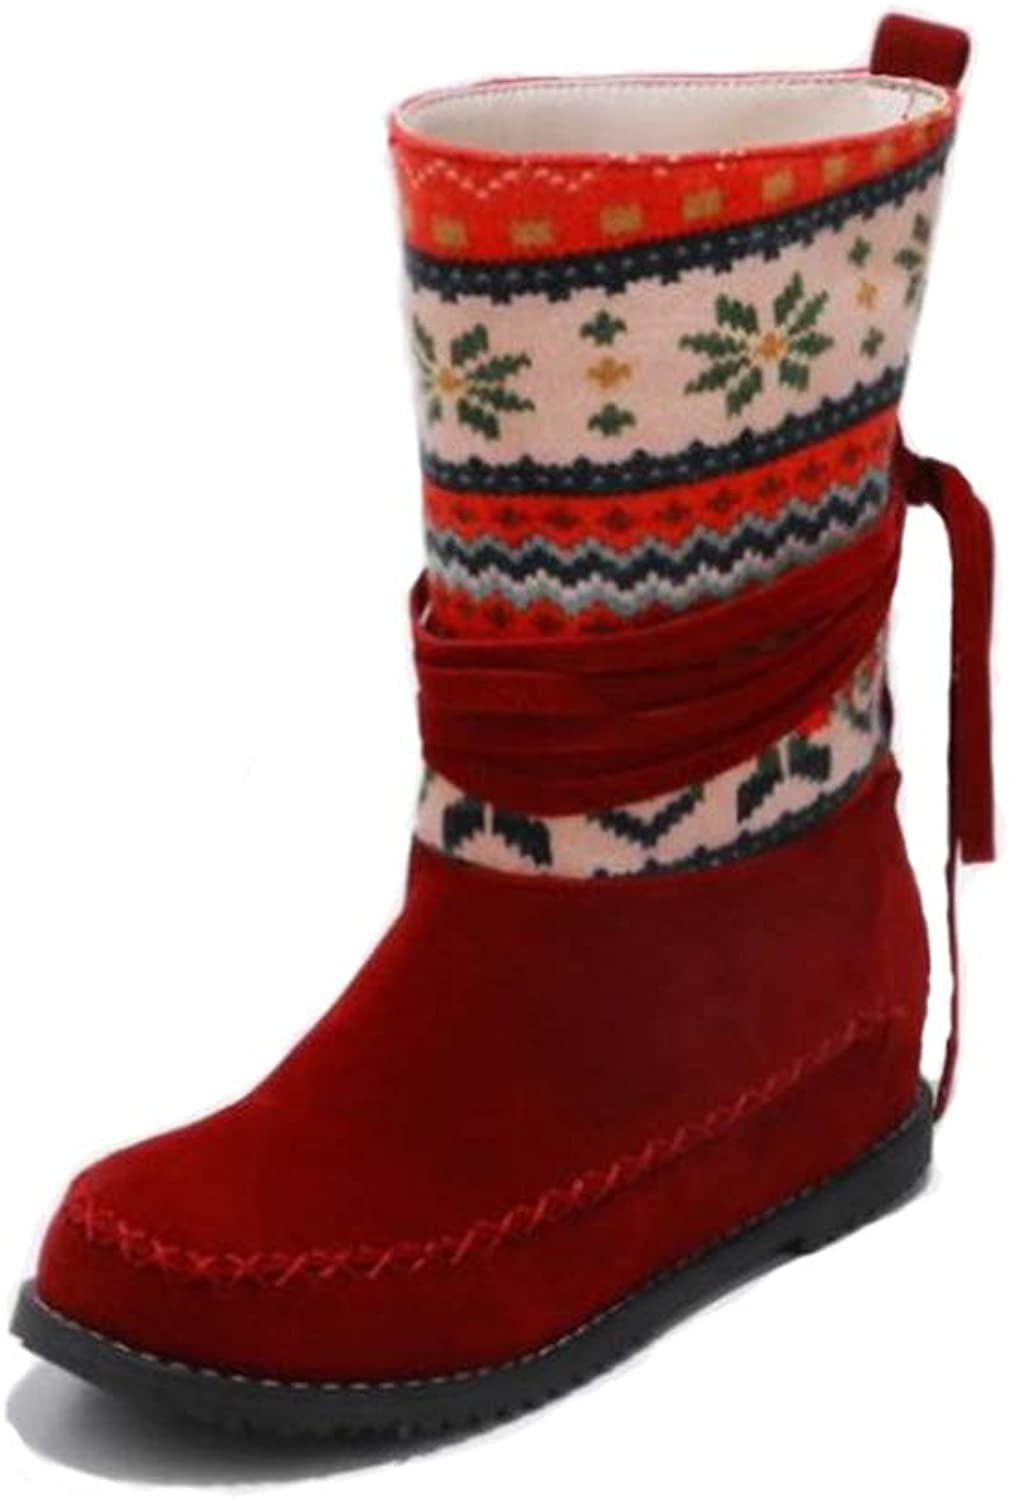 Super frist Christmas Women's Warm Thick Snow Boots Down Fur Lined Winter Boots lace high Heels